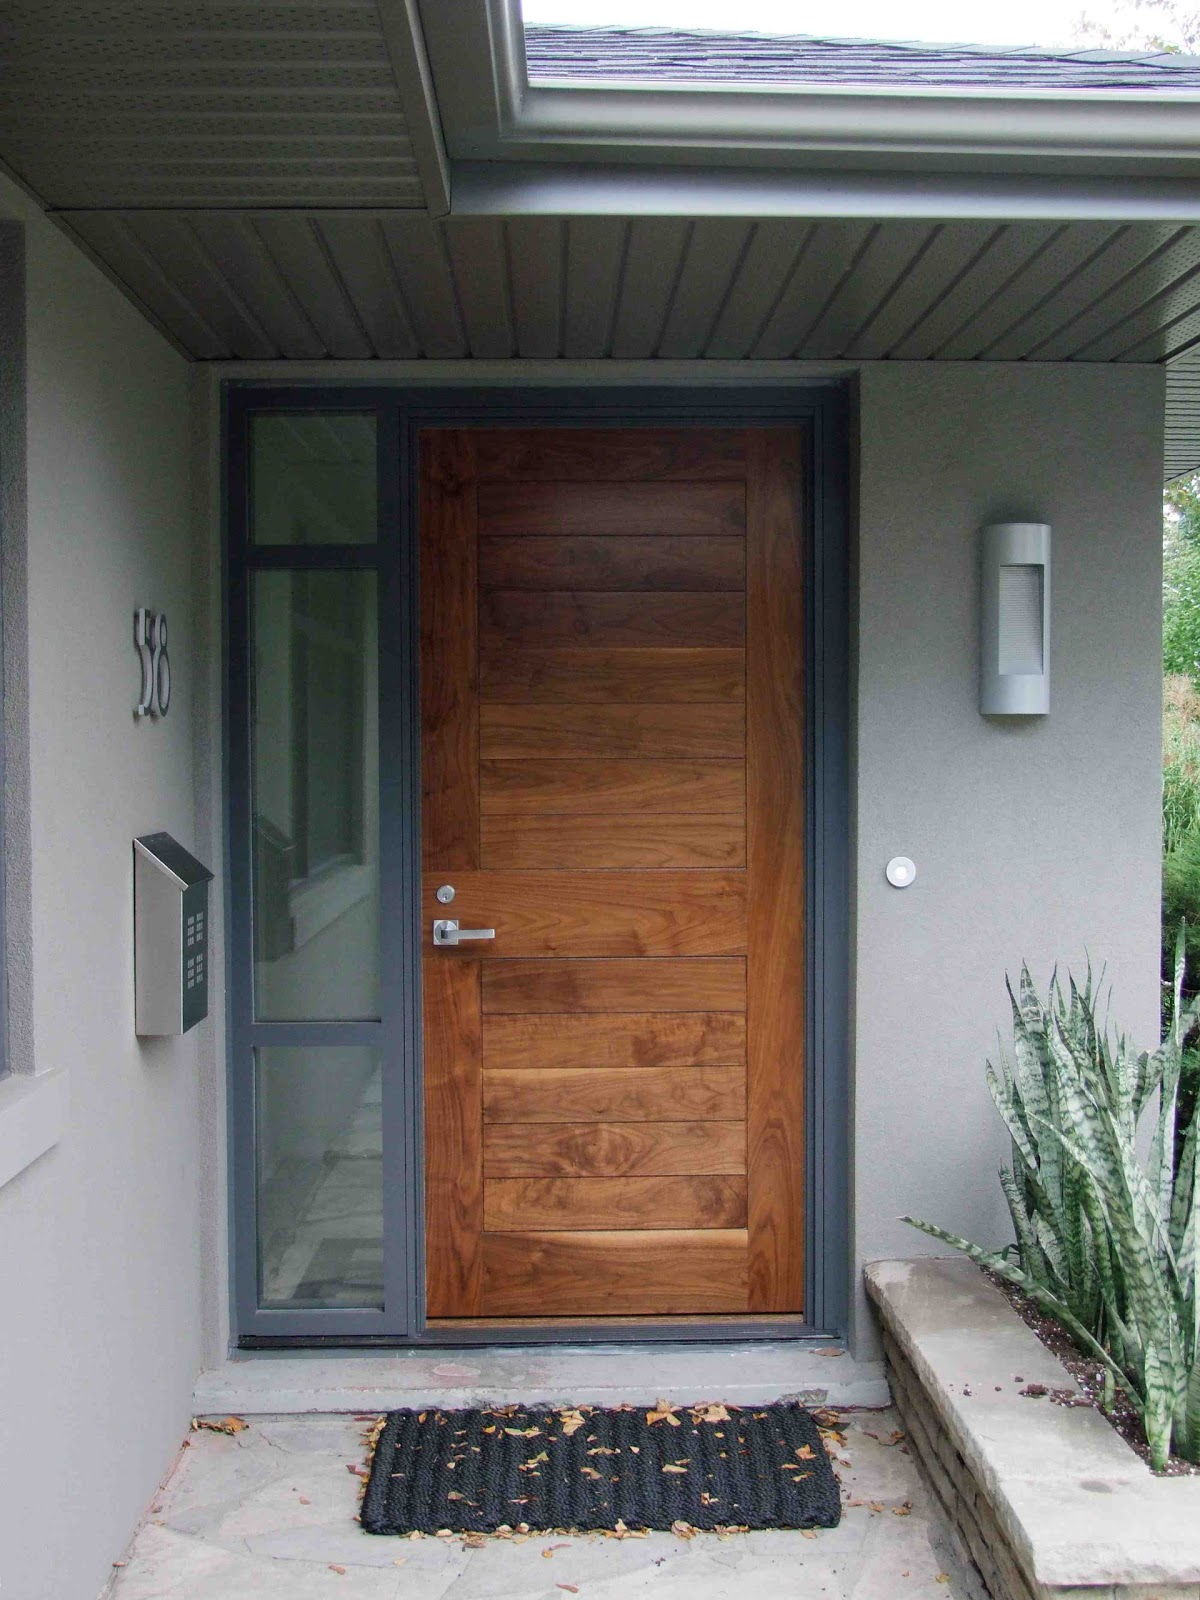 Creed 70 39 s bungalow makes a modern impression for Front entrance doors with glass